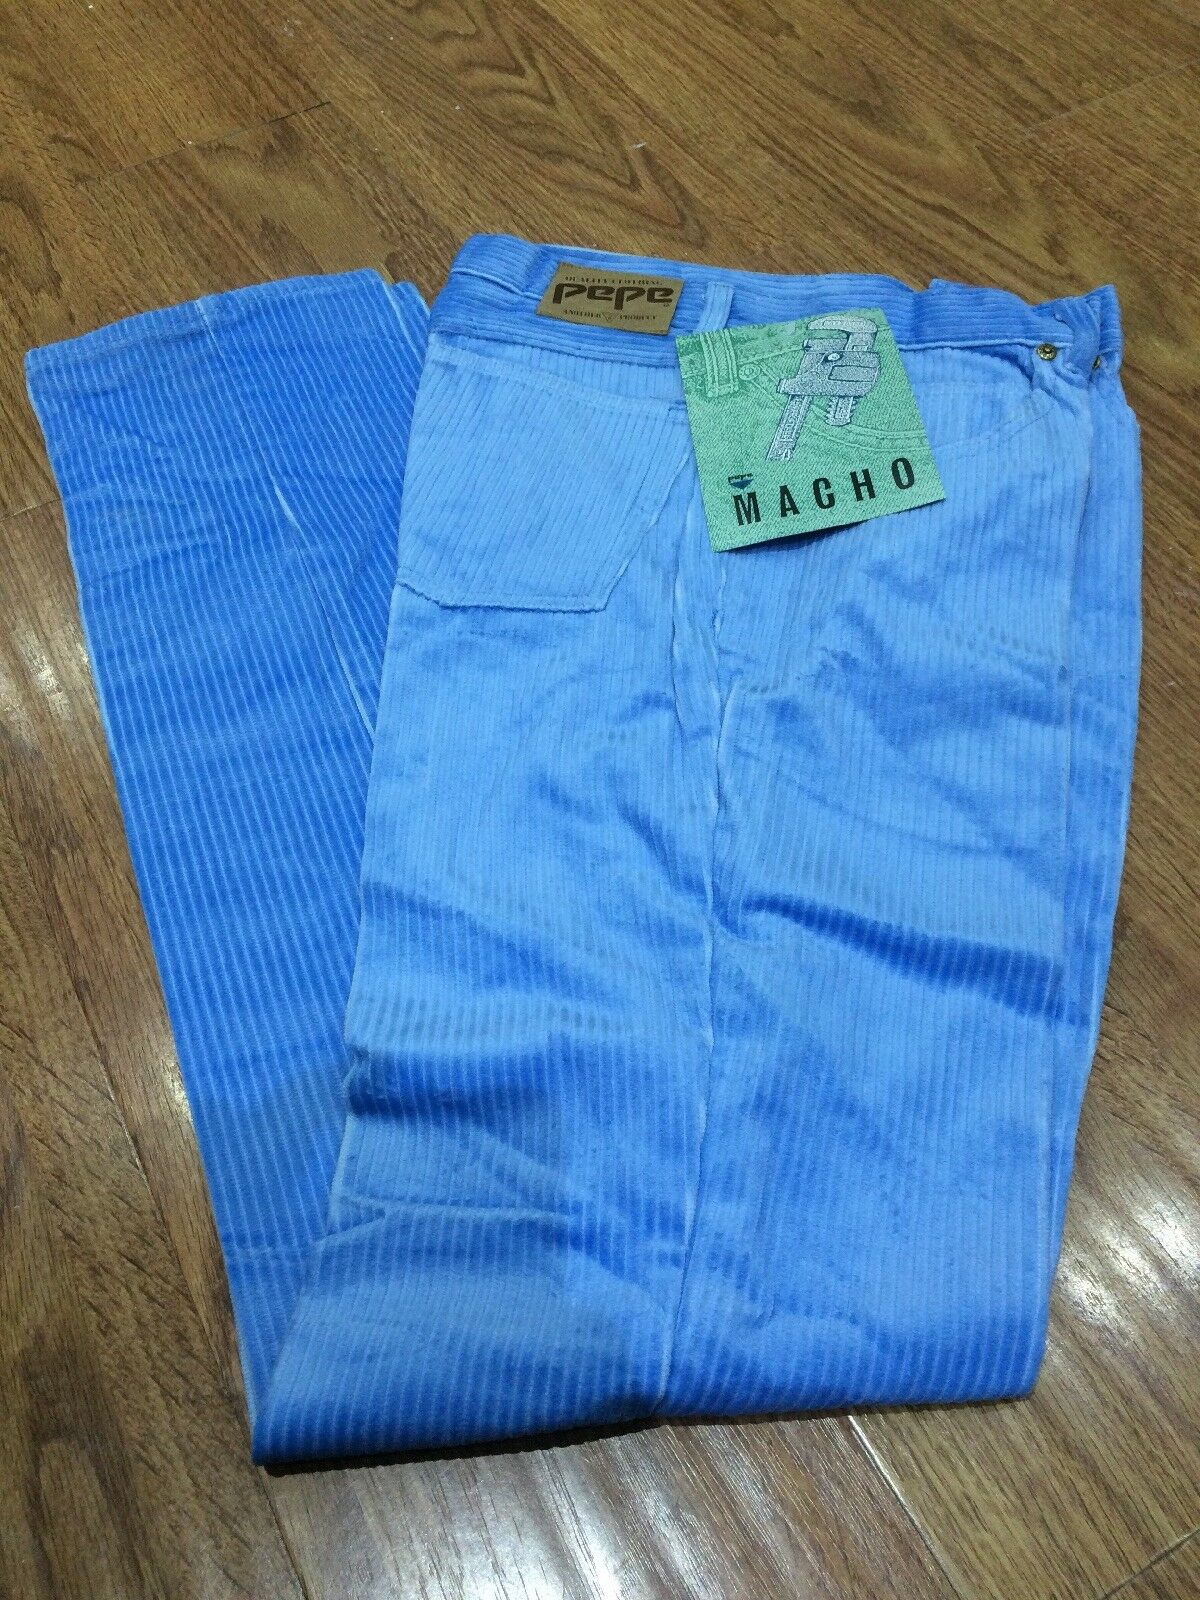 New PEPE Cords, Sky bluee, Collectible, From The 80's